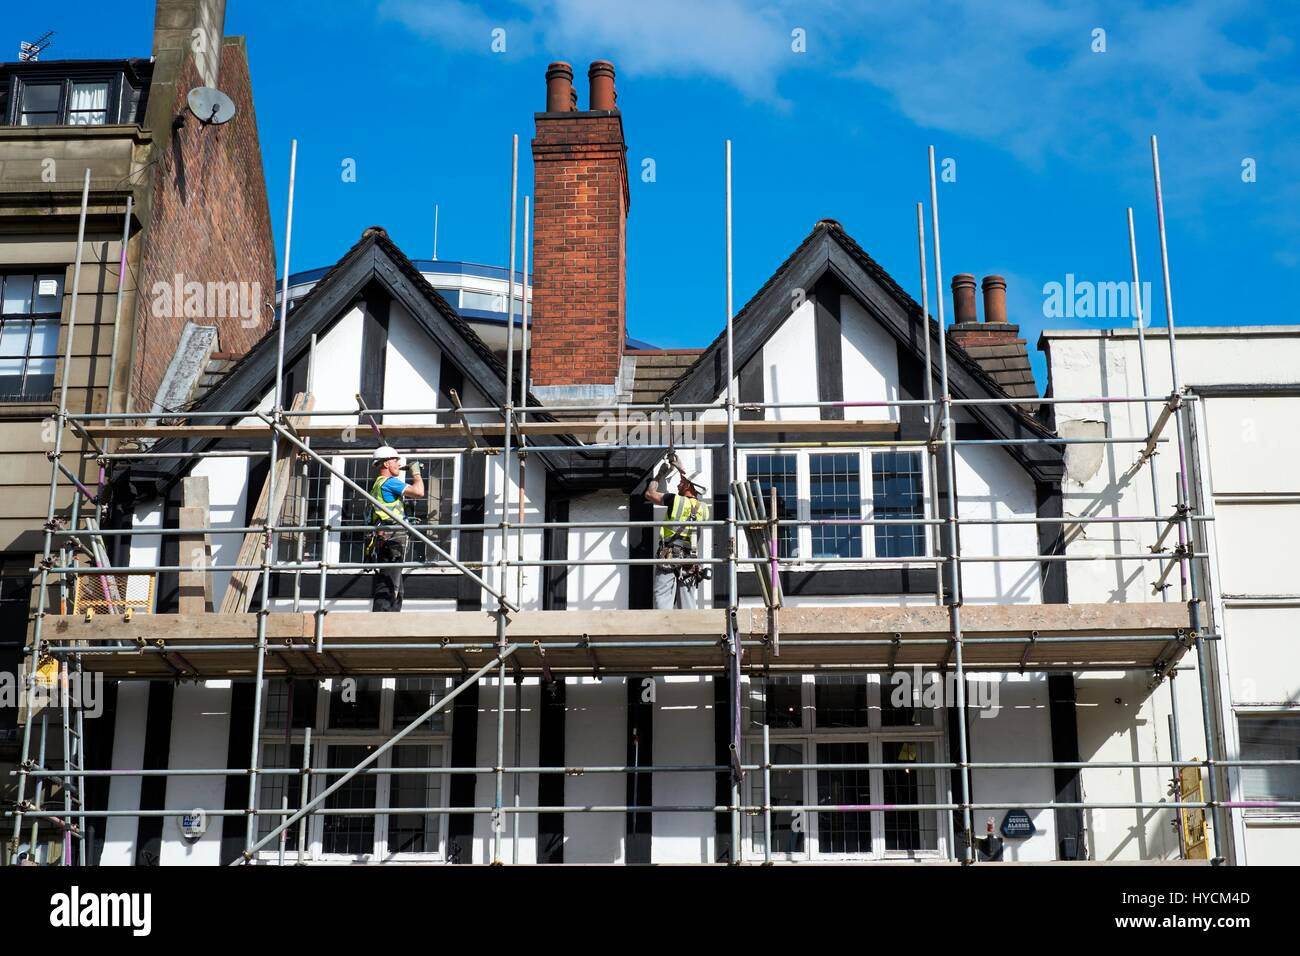 Working on scaffolding - Stock Image